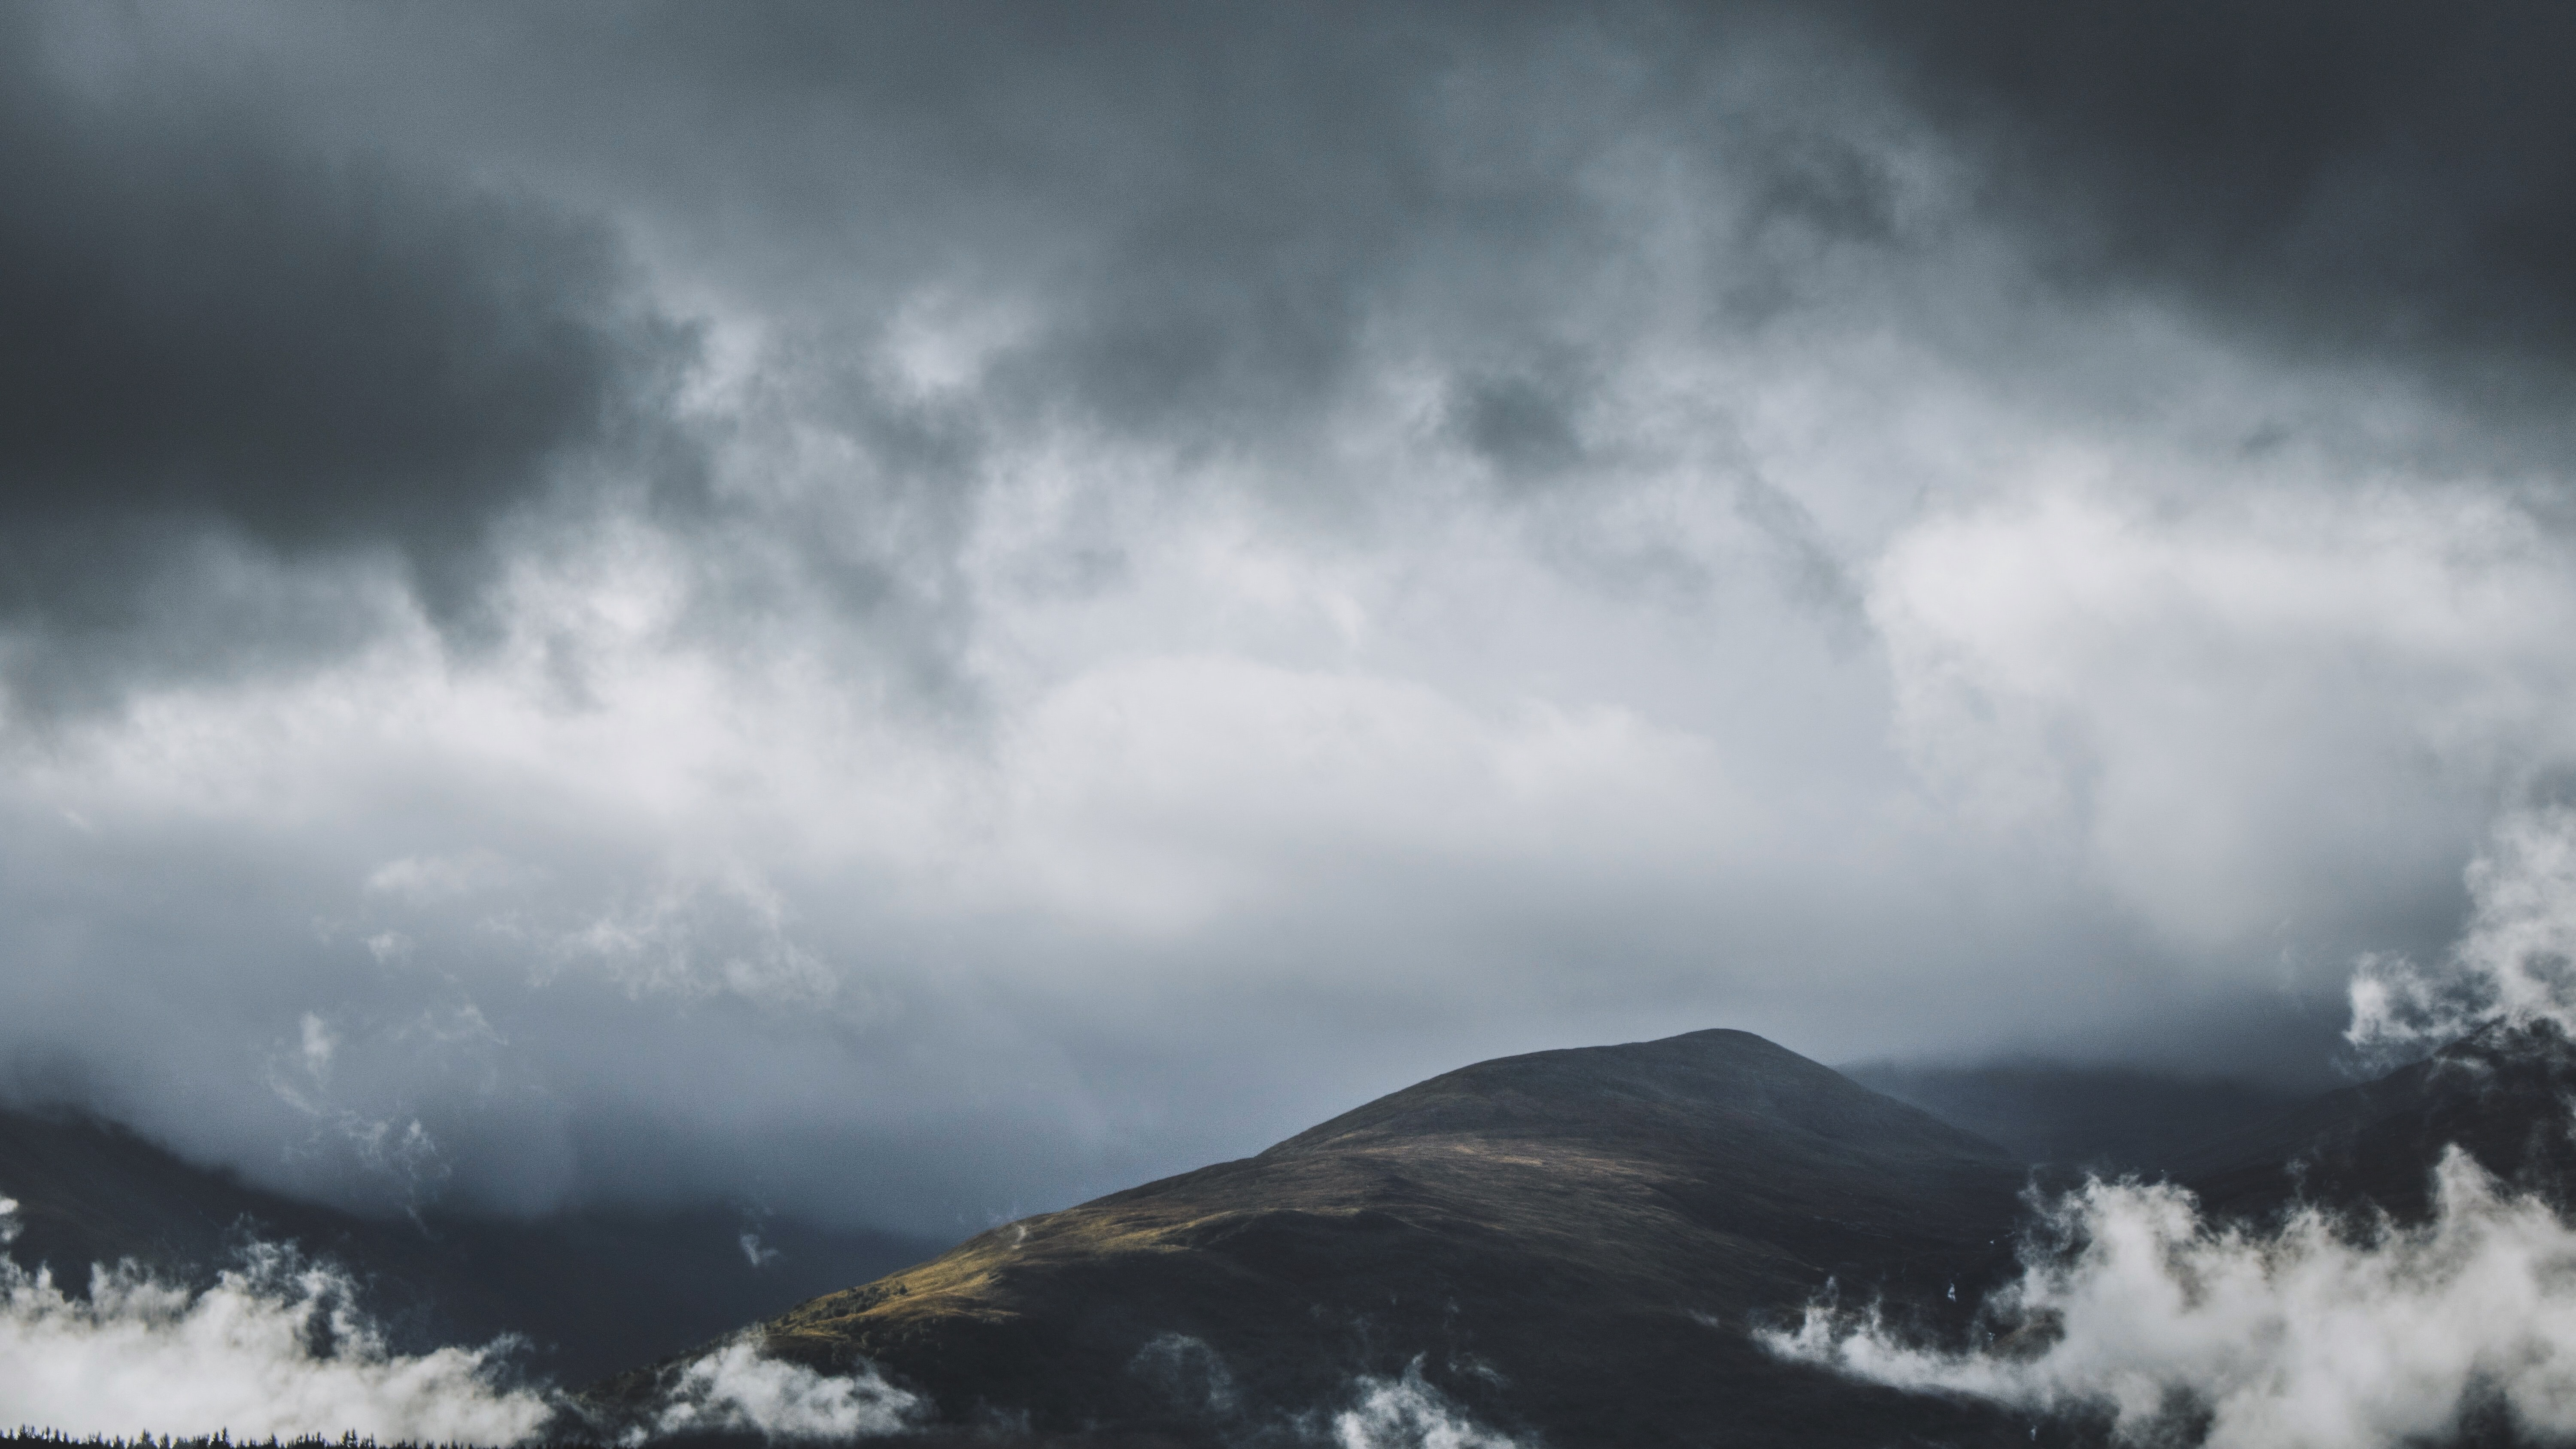 brown and black hill under cloudy sky during daytime